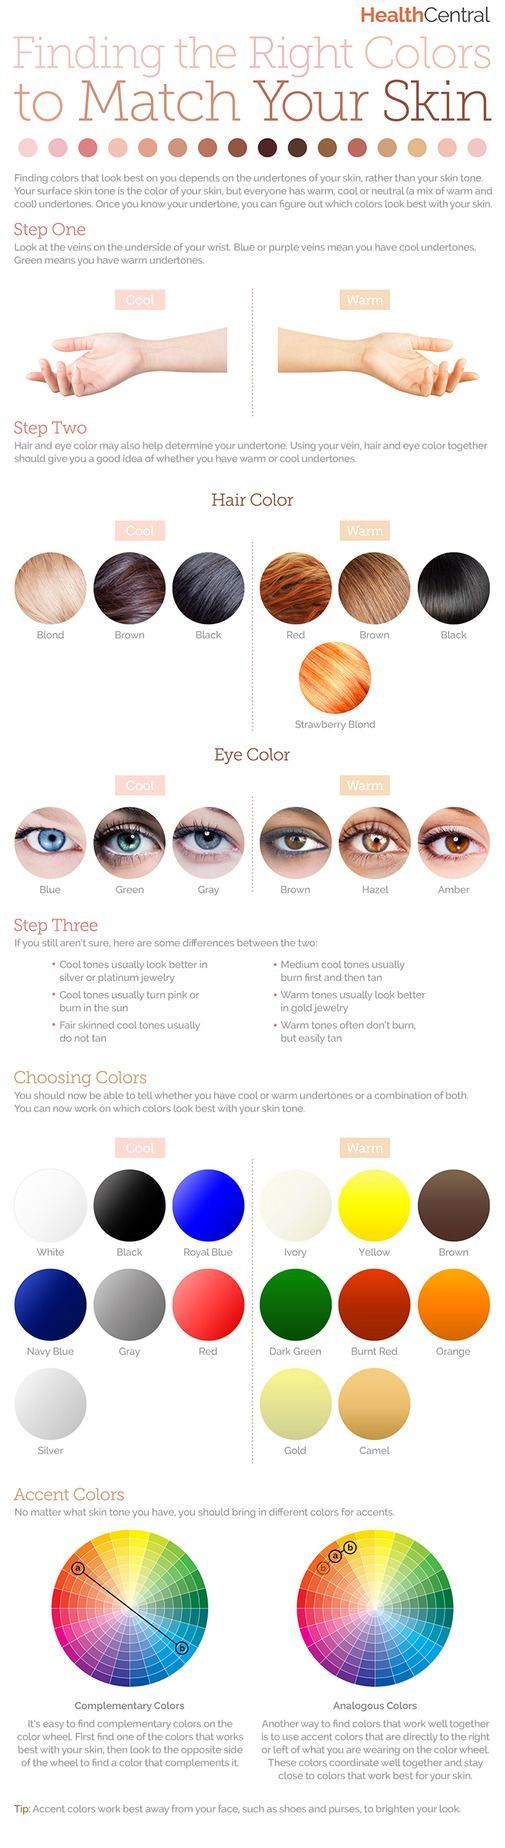 How to find the right colors to match your #skin: (#INFOGRAPHIC) https://www.youniqueproducts.com/JodieMichelle/products/view/US-42016-01#.VyeHQnErKVM